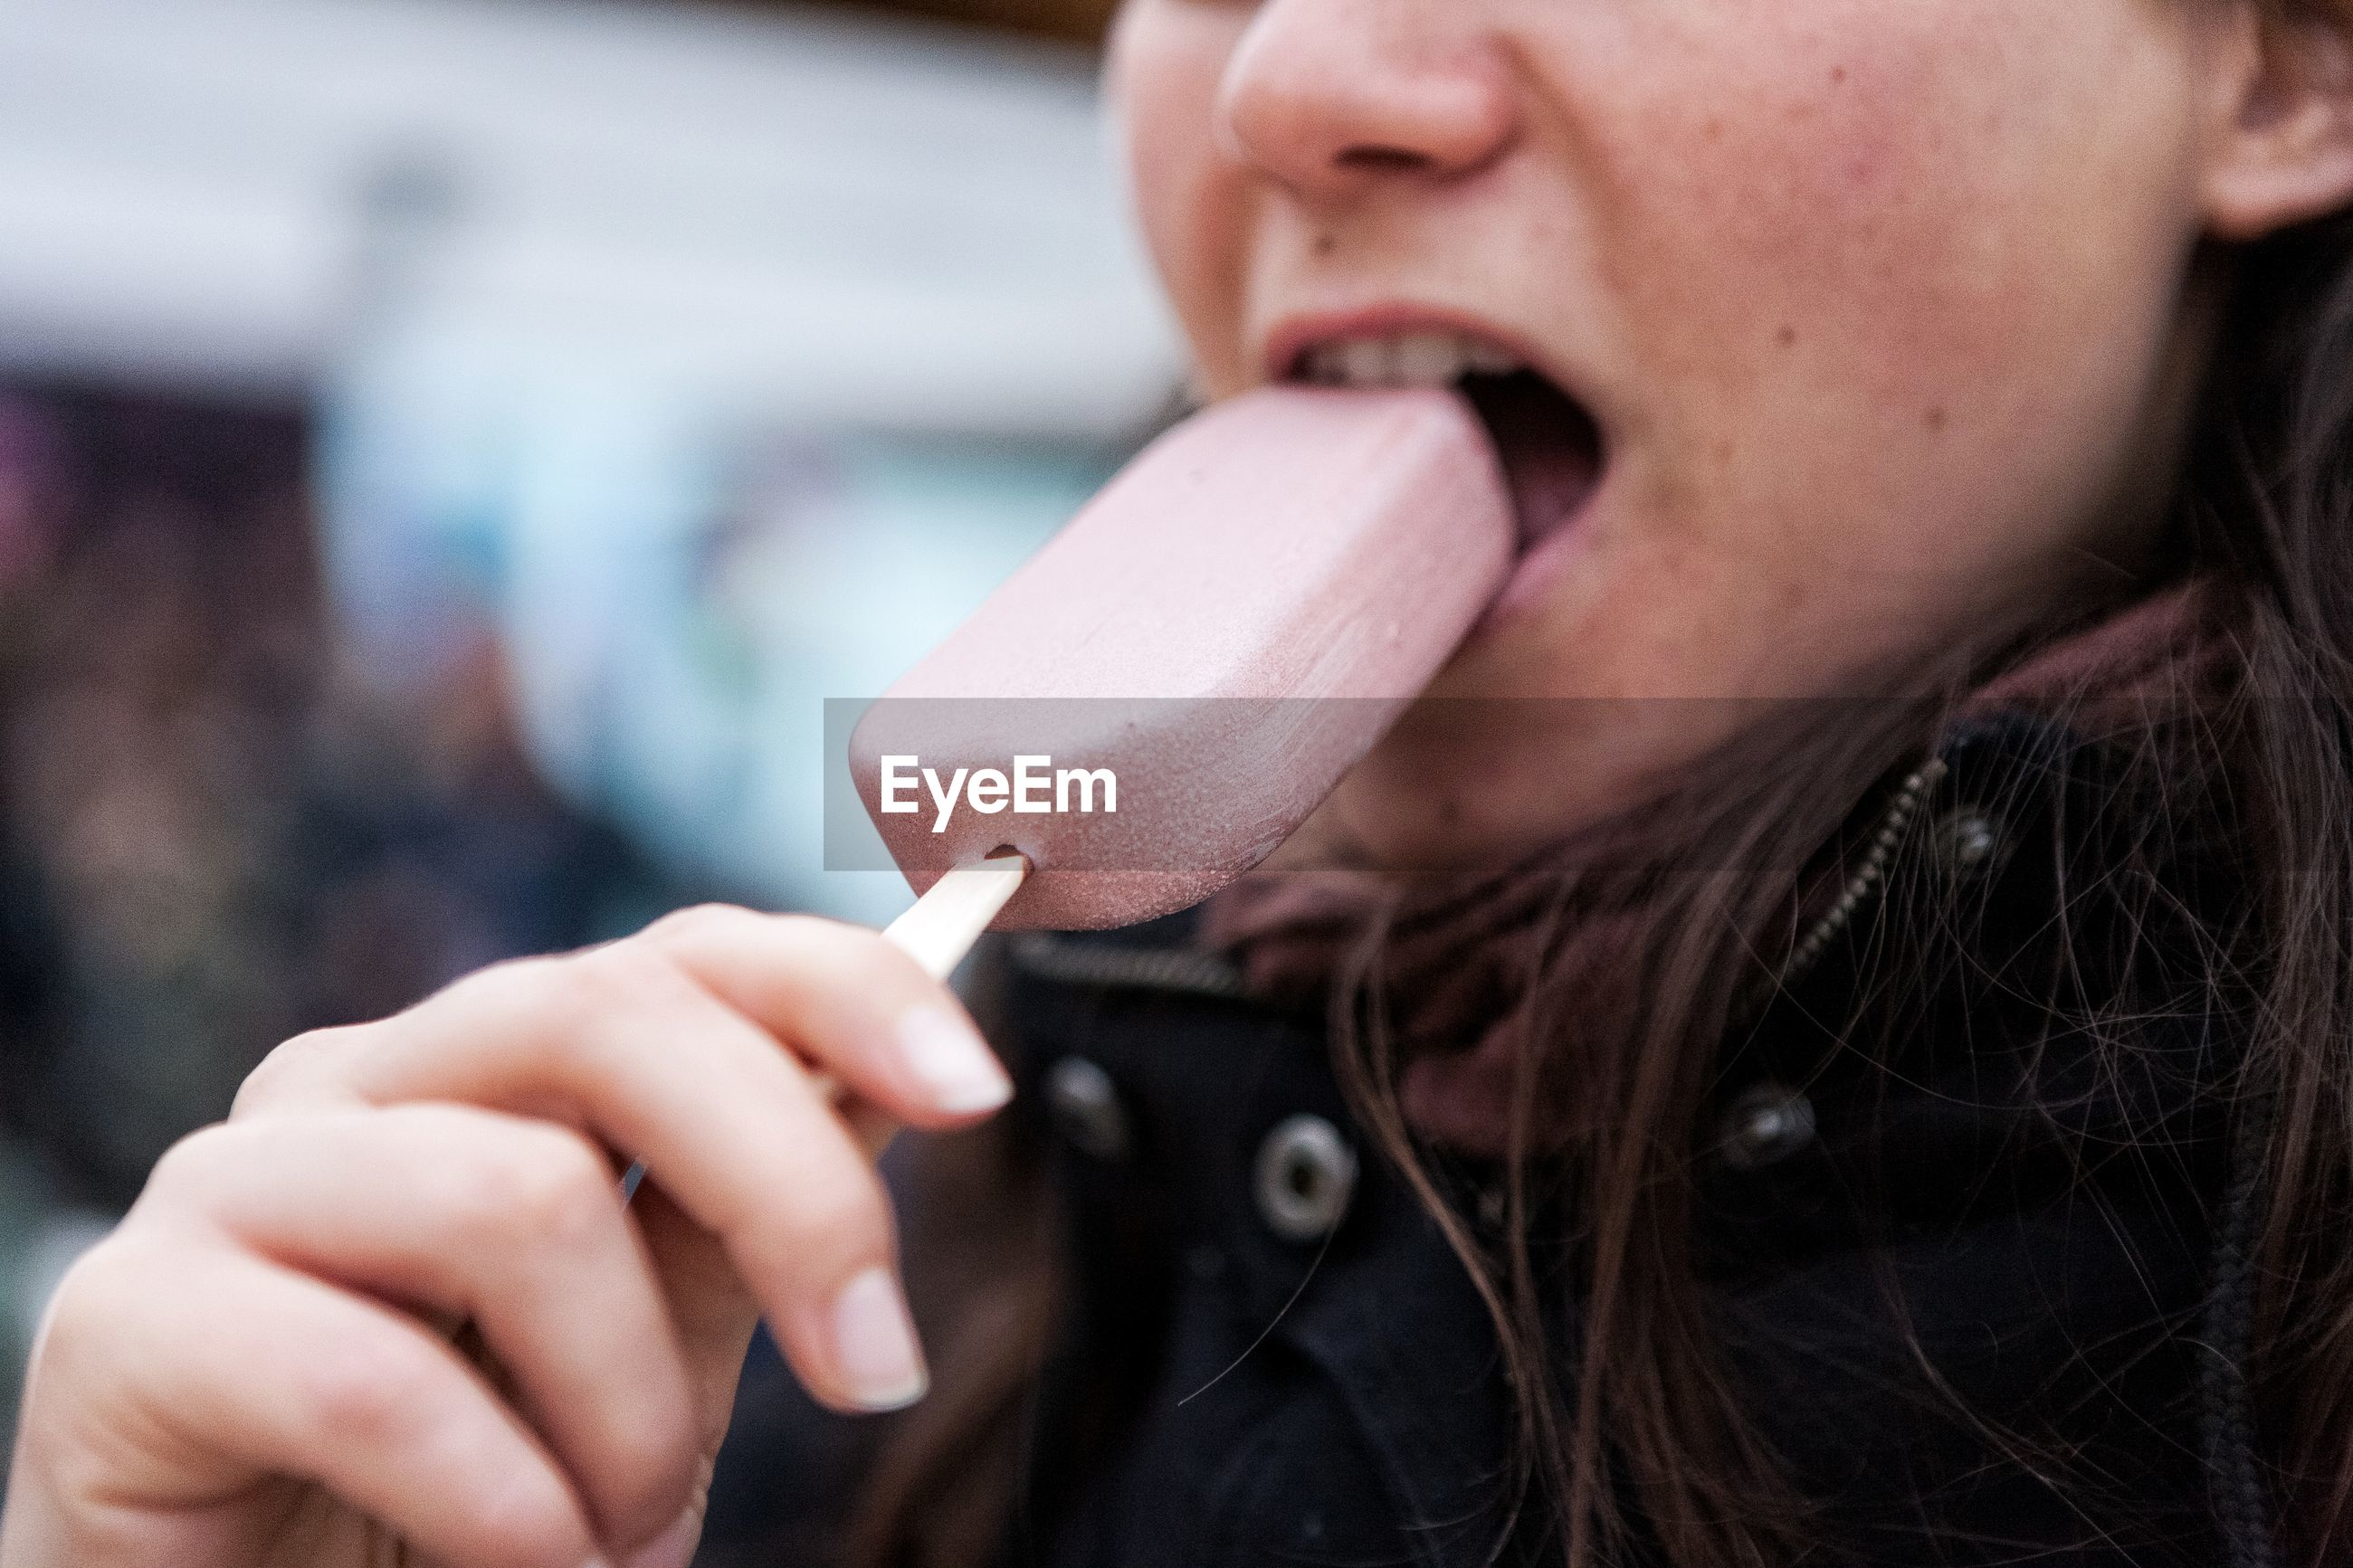 Close-up portrait of a woman eating icecream